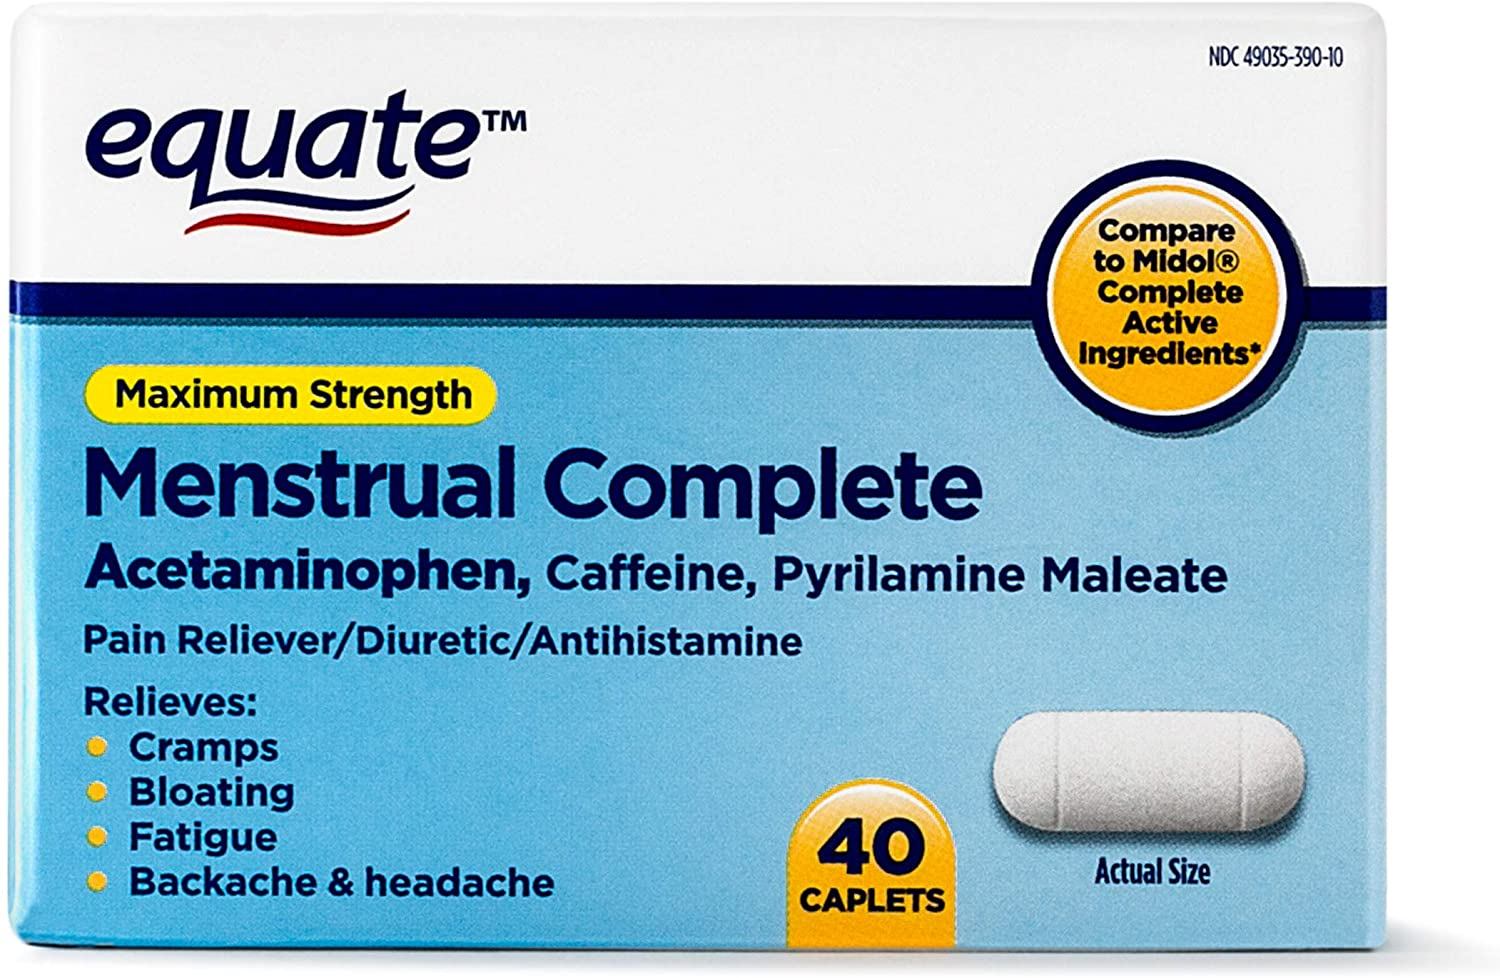 Equate - Menstrual Complete, 40 Caplets (Compare to Midol)